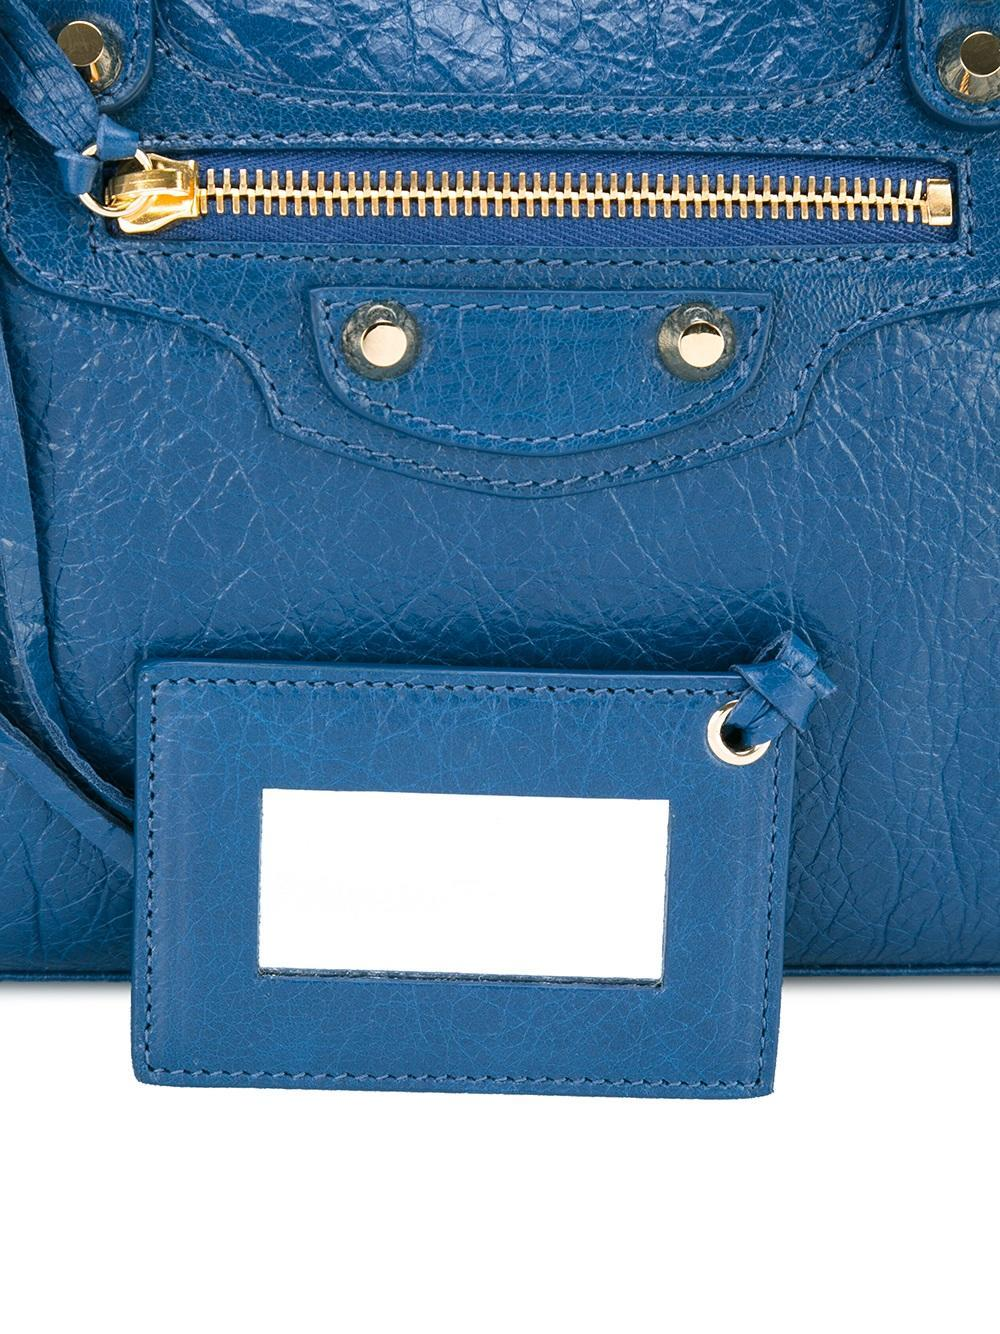 Balenciaga Leather - Removable Strap Tote - Women - Lamb Skin - One Size in Blue